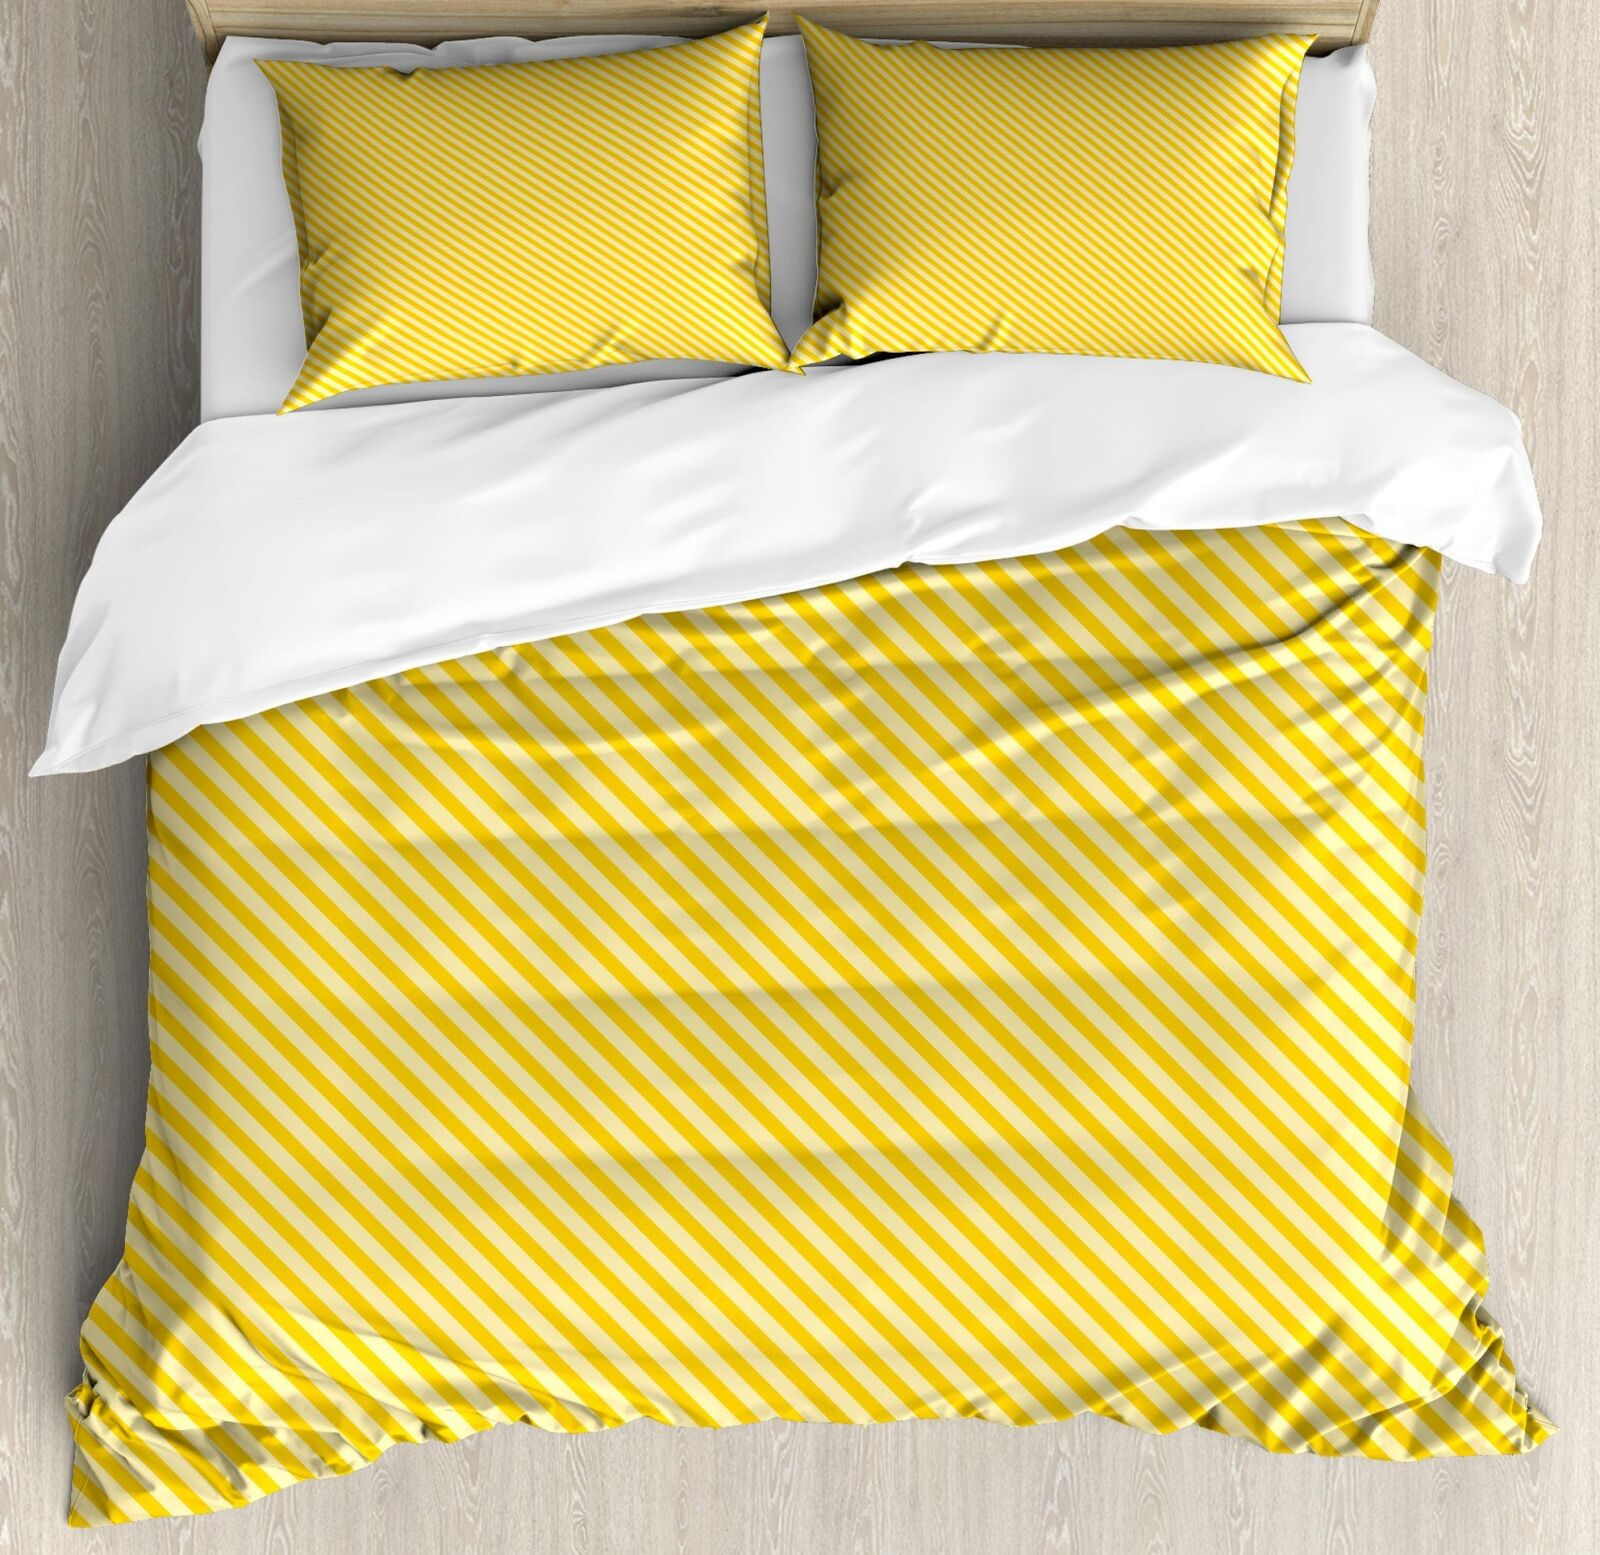 Vintage giallo Duvet Cover Set Twin Queen King Dimensiones with Pillow Shams Bedding